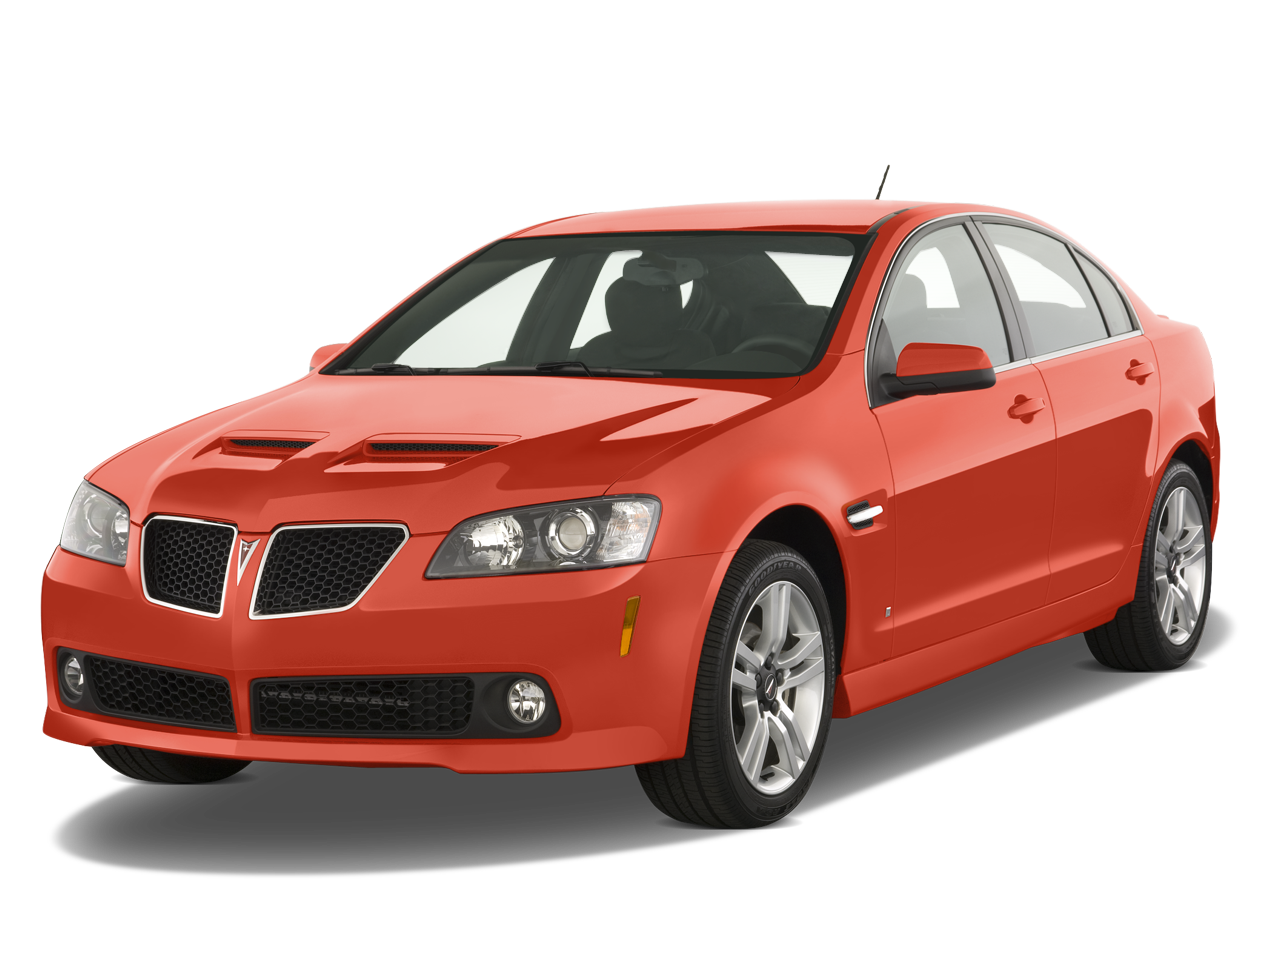 2008 Pontiac G8 Gt Pontiac Sport Sedan Review